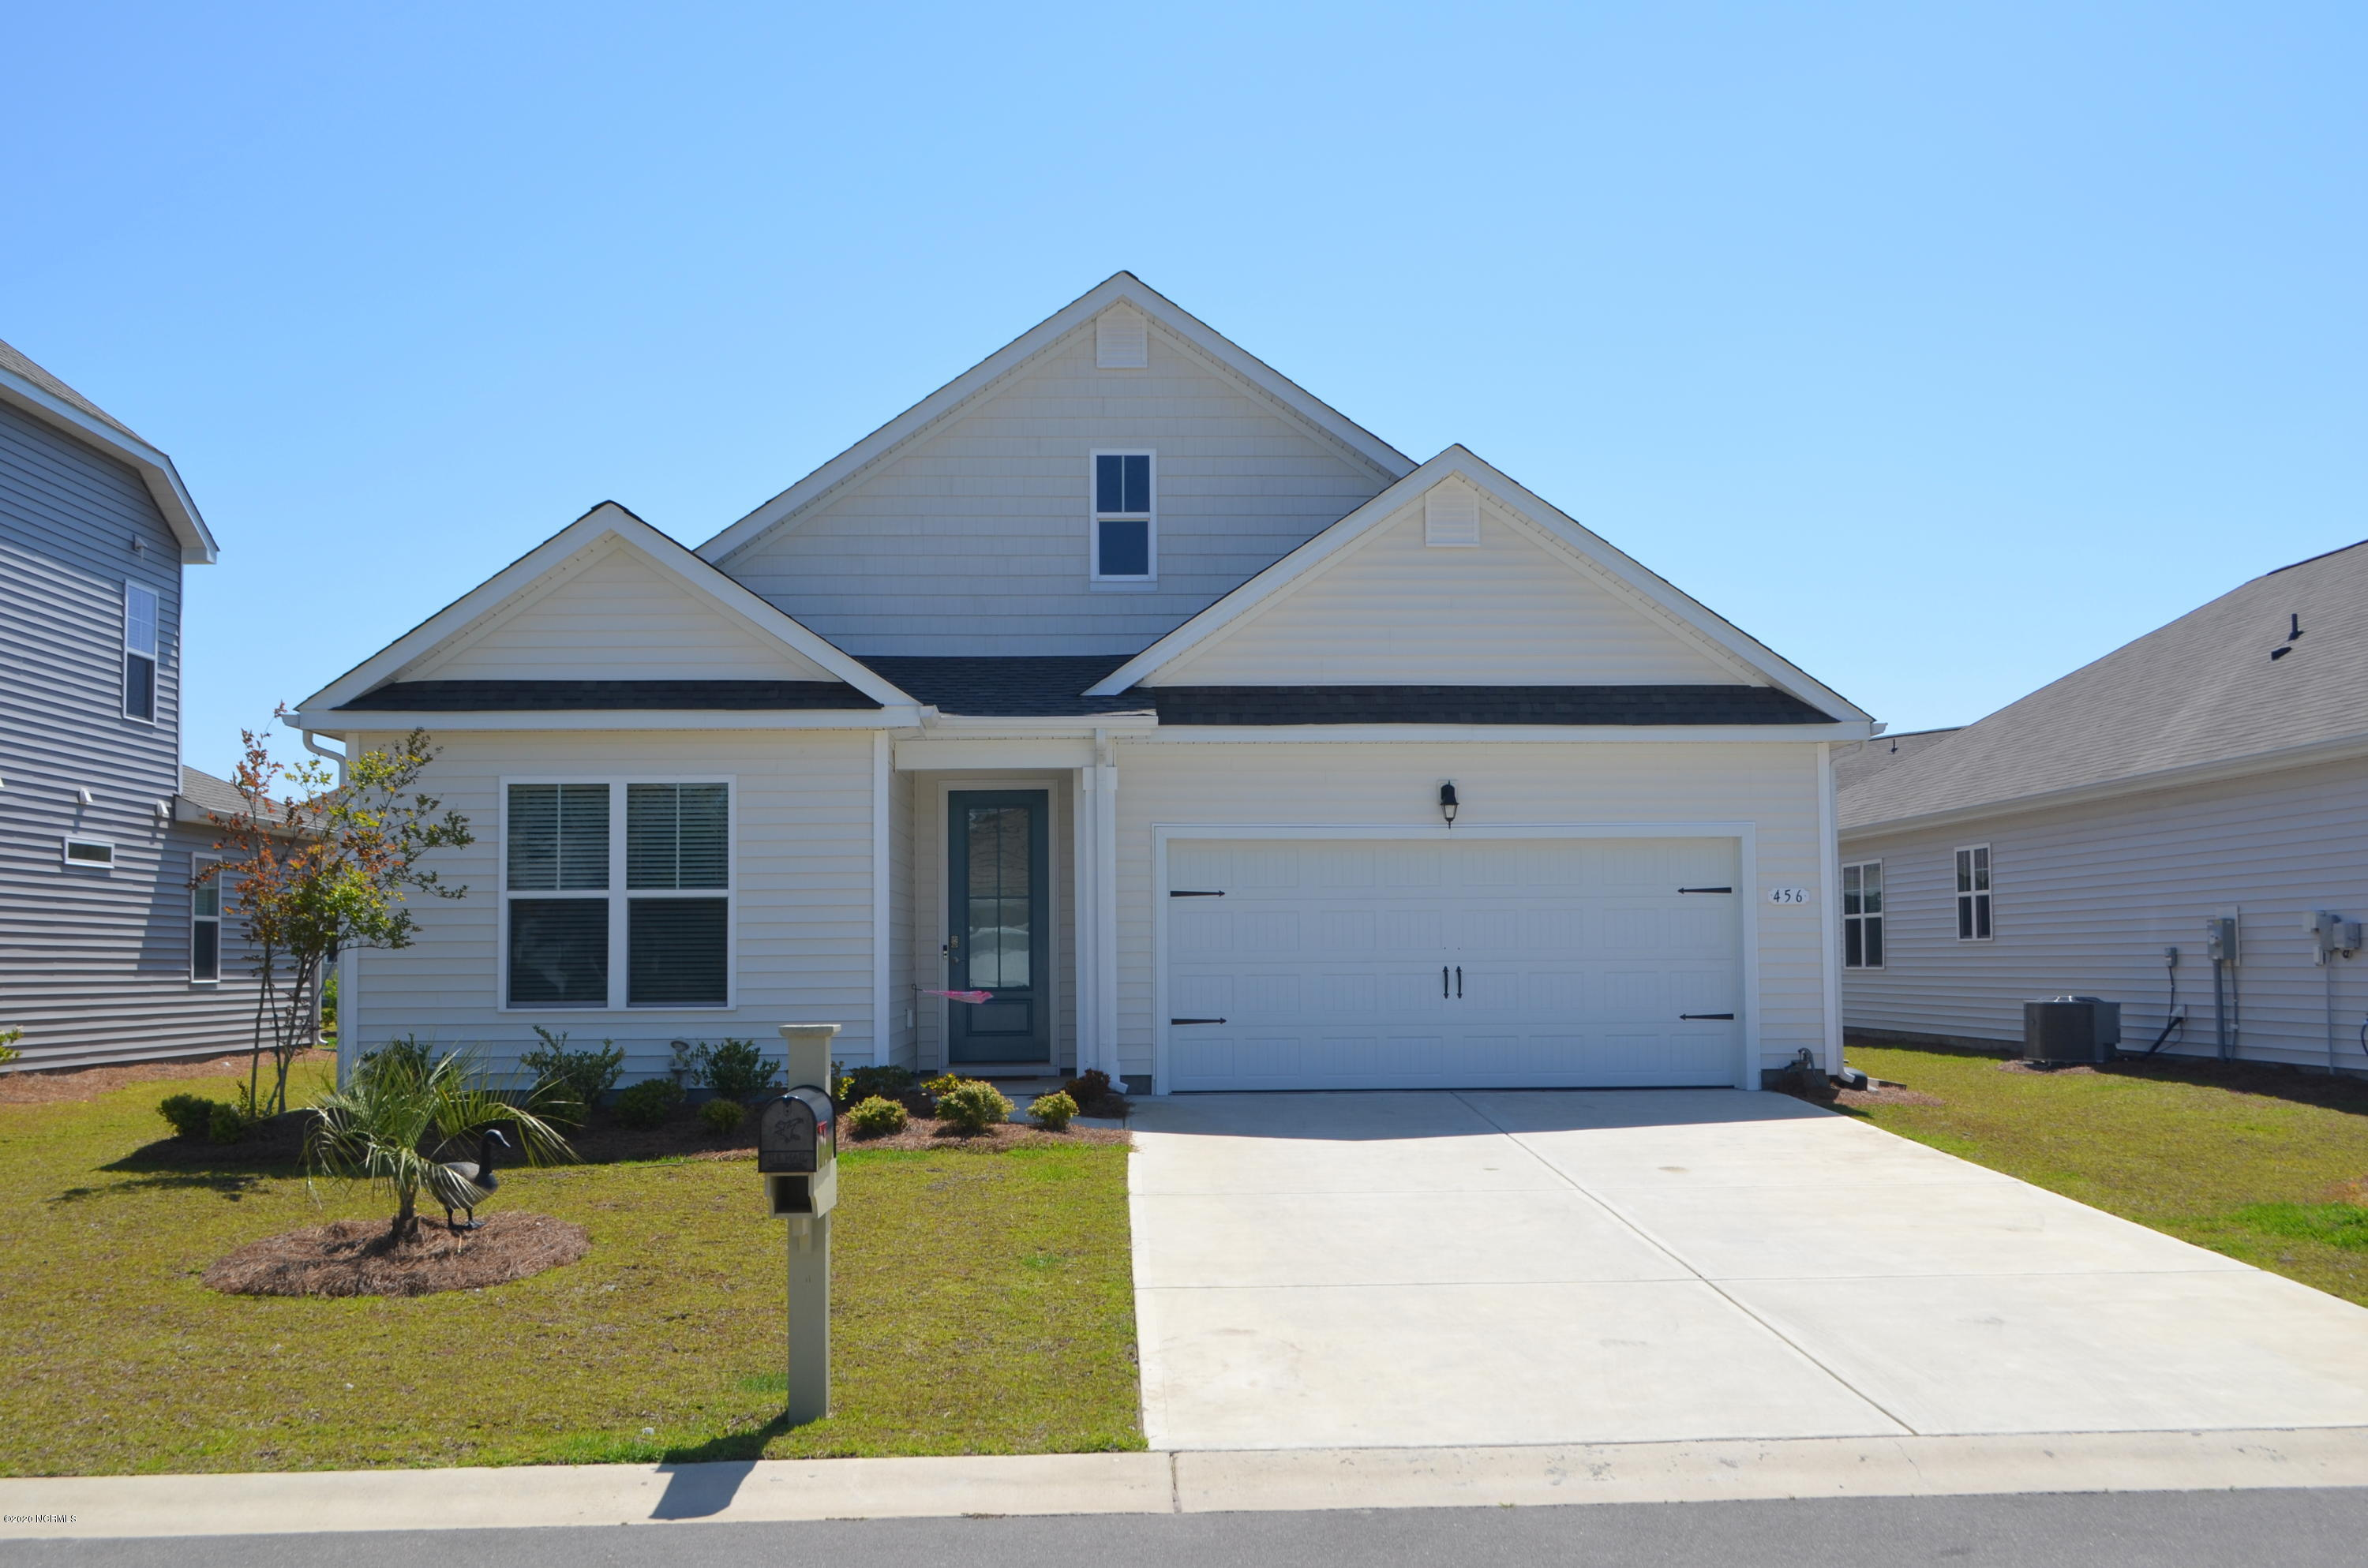 456 Cornflower Street Carolina Shores, NC 28467